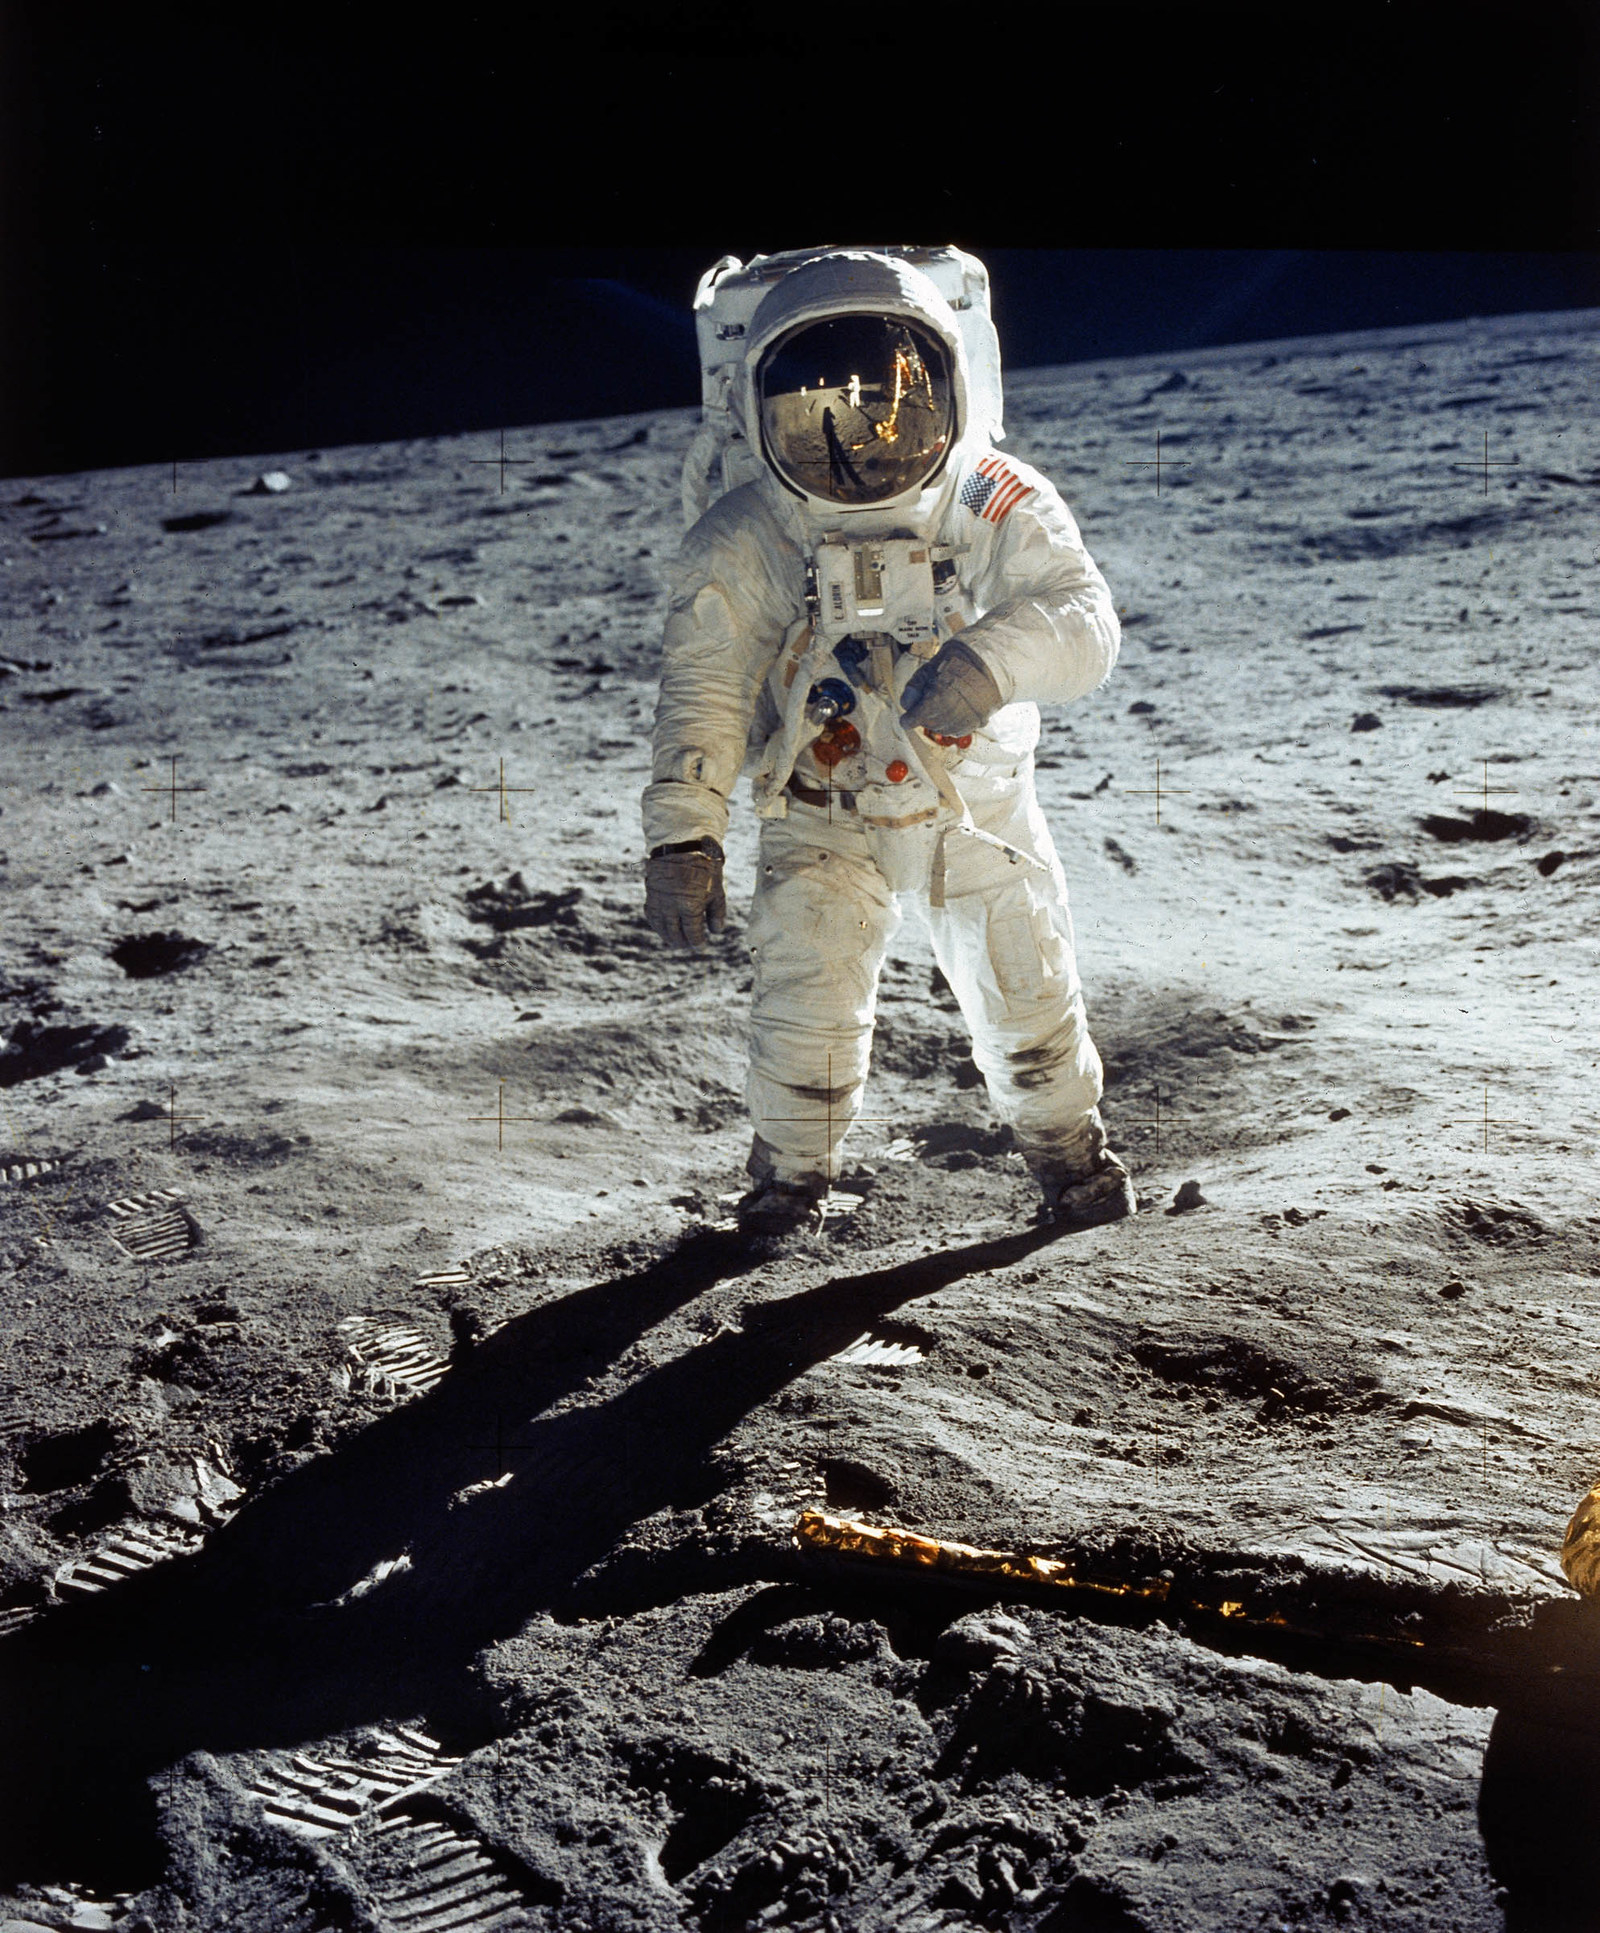 1969 Apollo 11 astronaut Buzz Aldrin standing on the moon, with Neil Armstrong reflected in his visor.